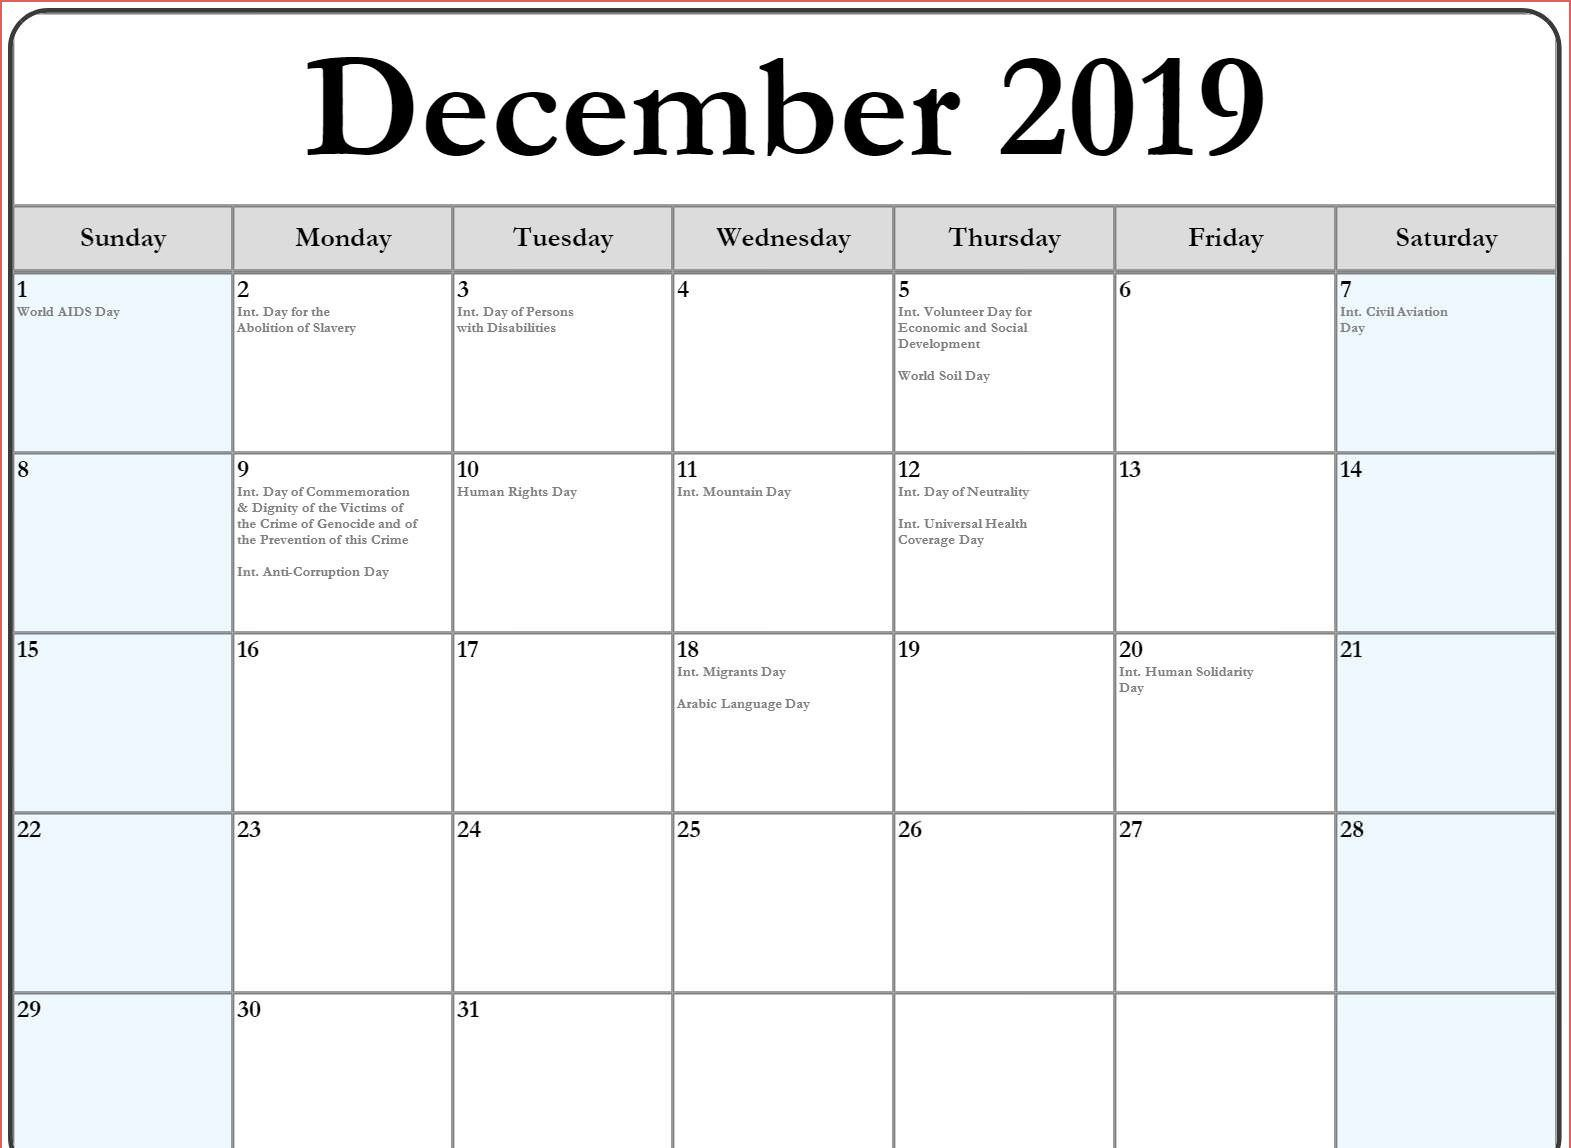 December 2019 Calendar With Holidays US